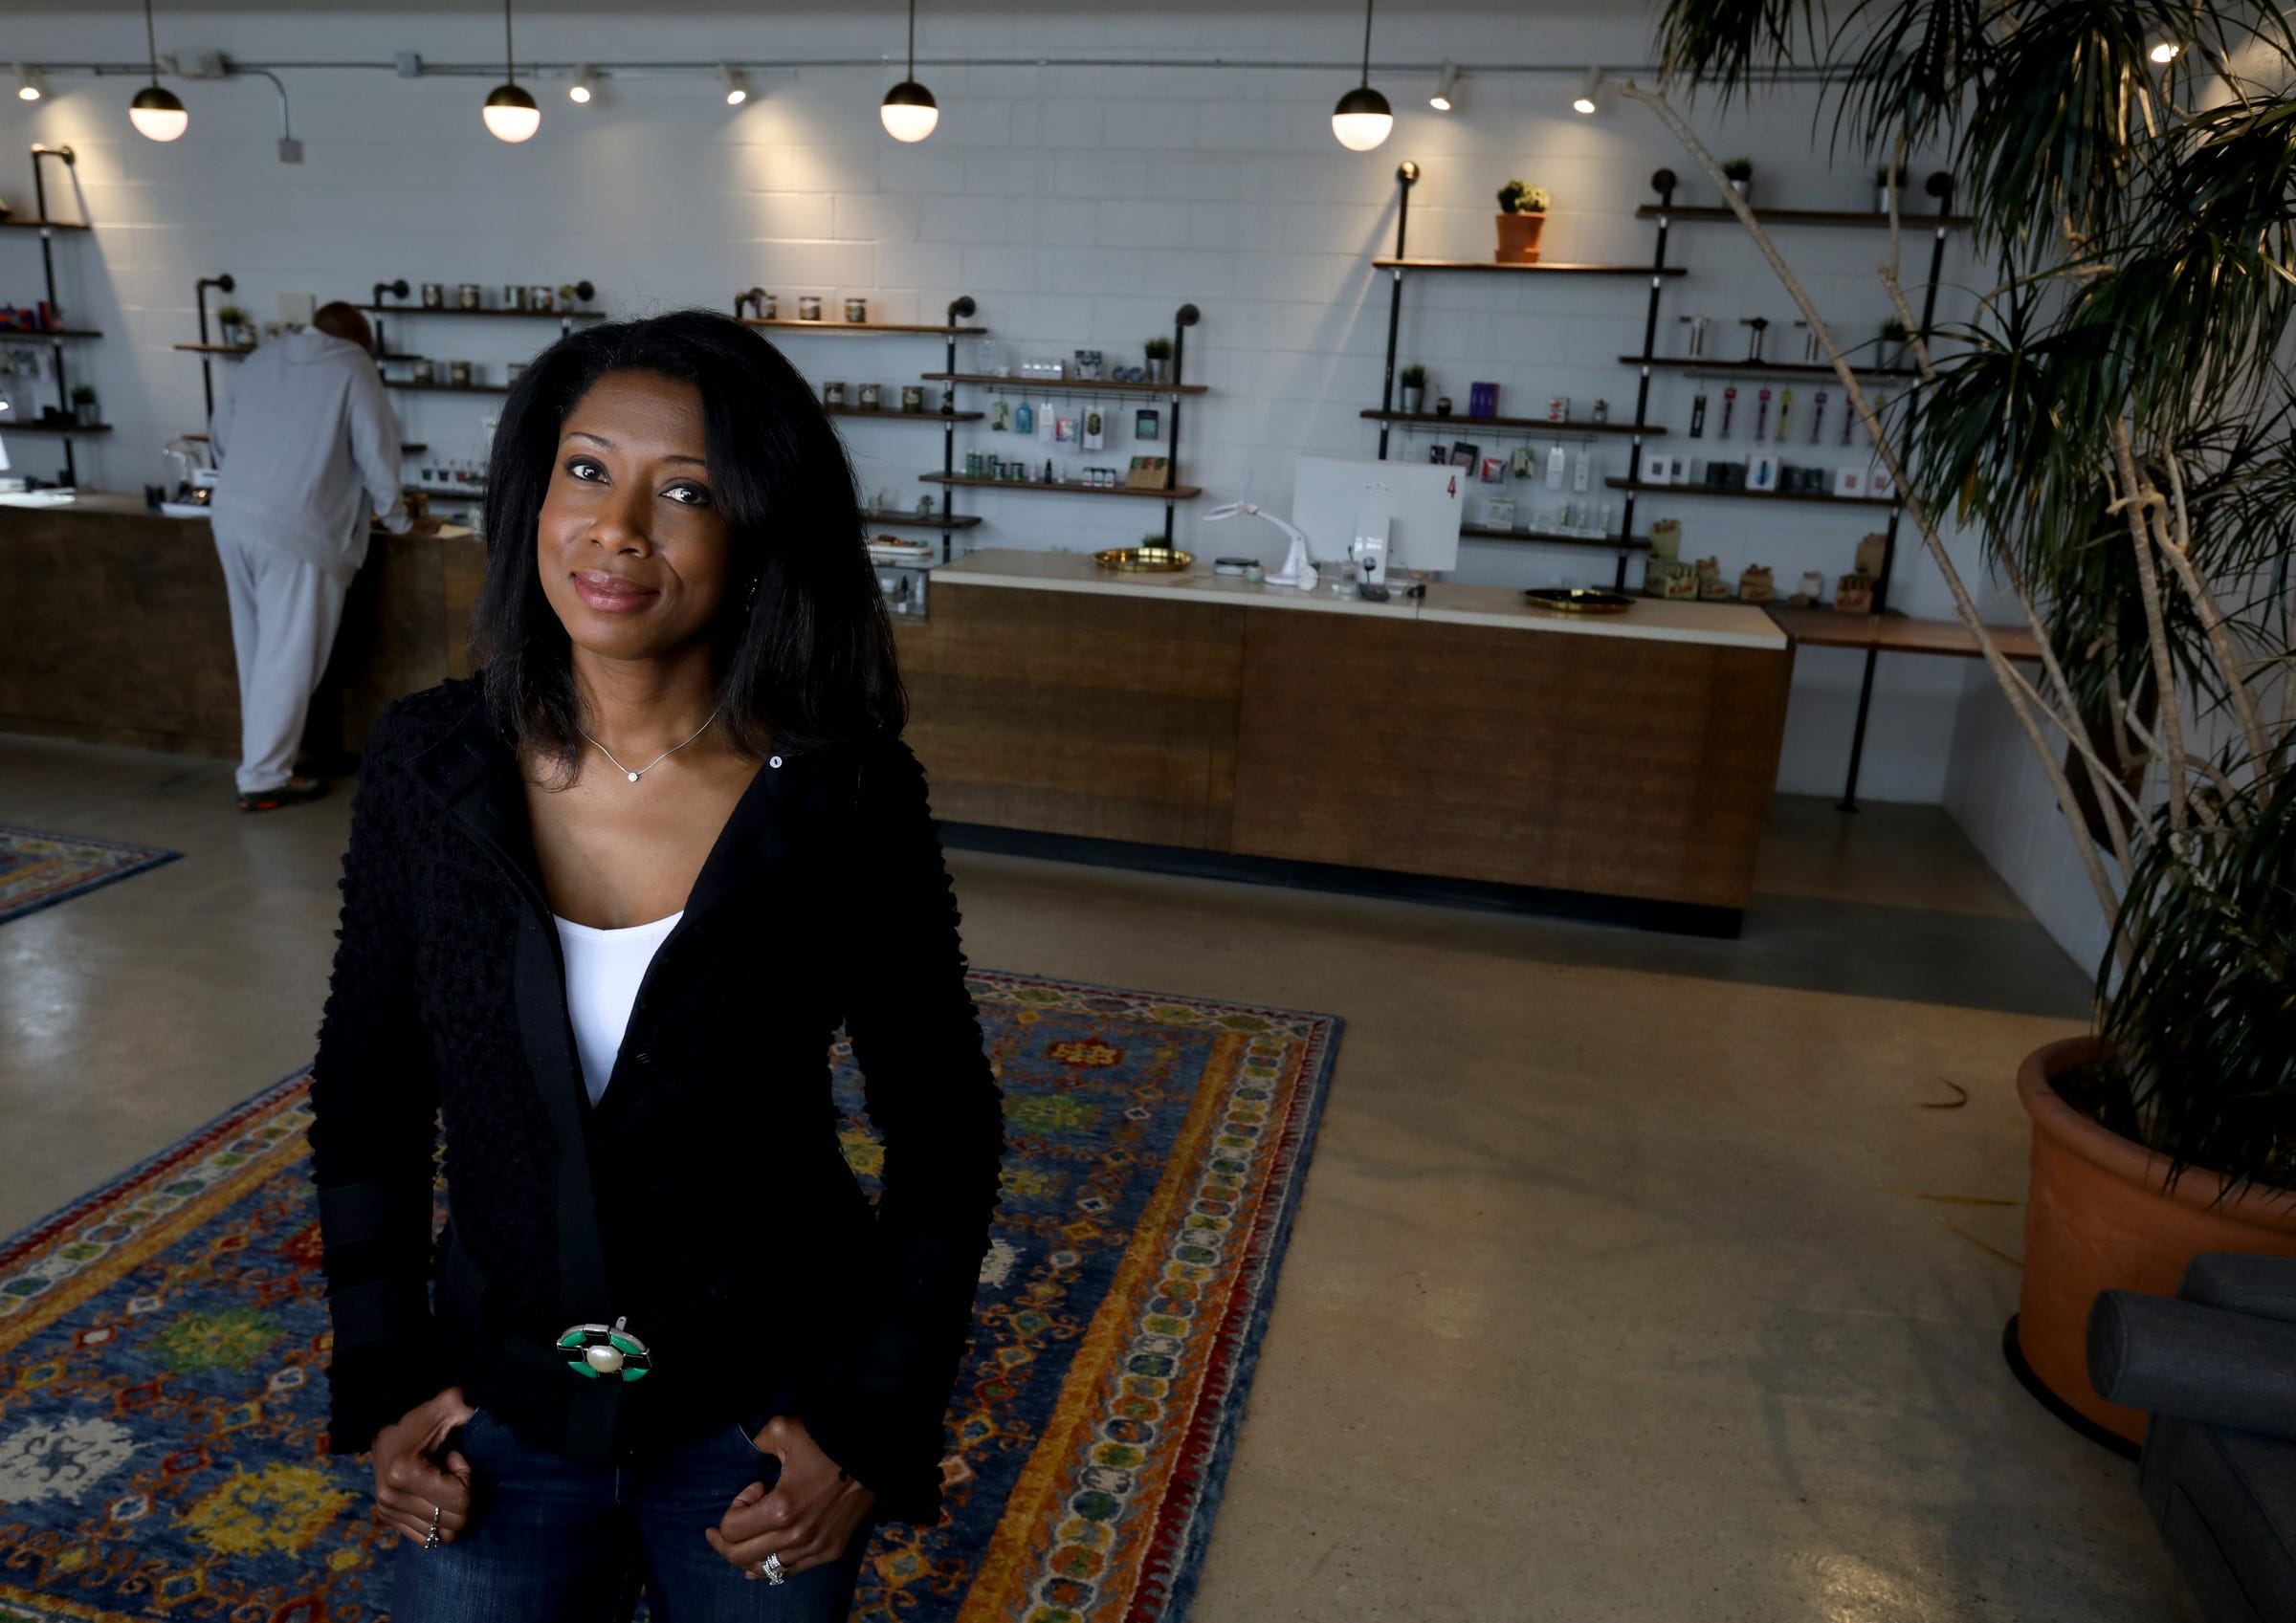 Minorities find themselves almost shut out of Michigan's marijuana business